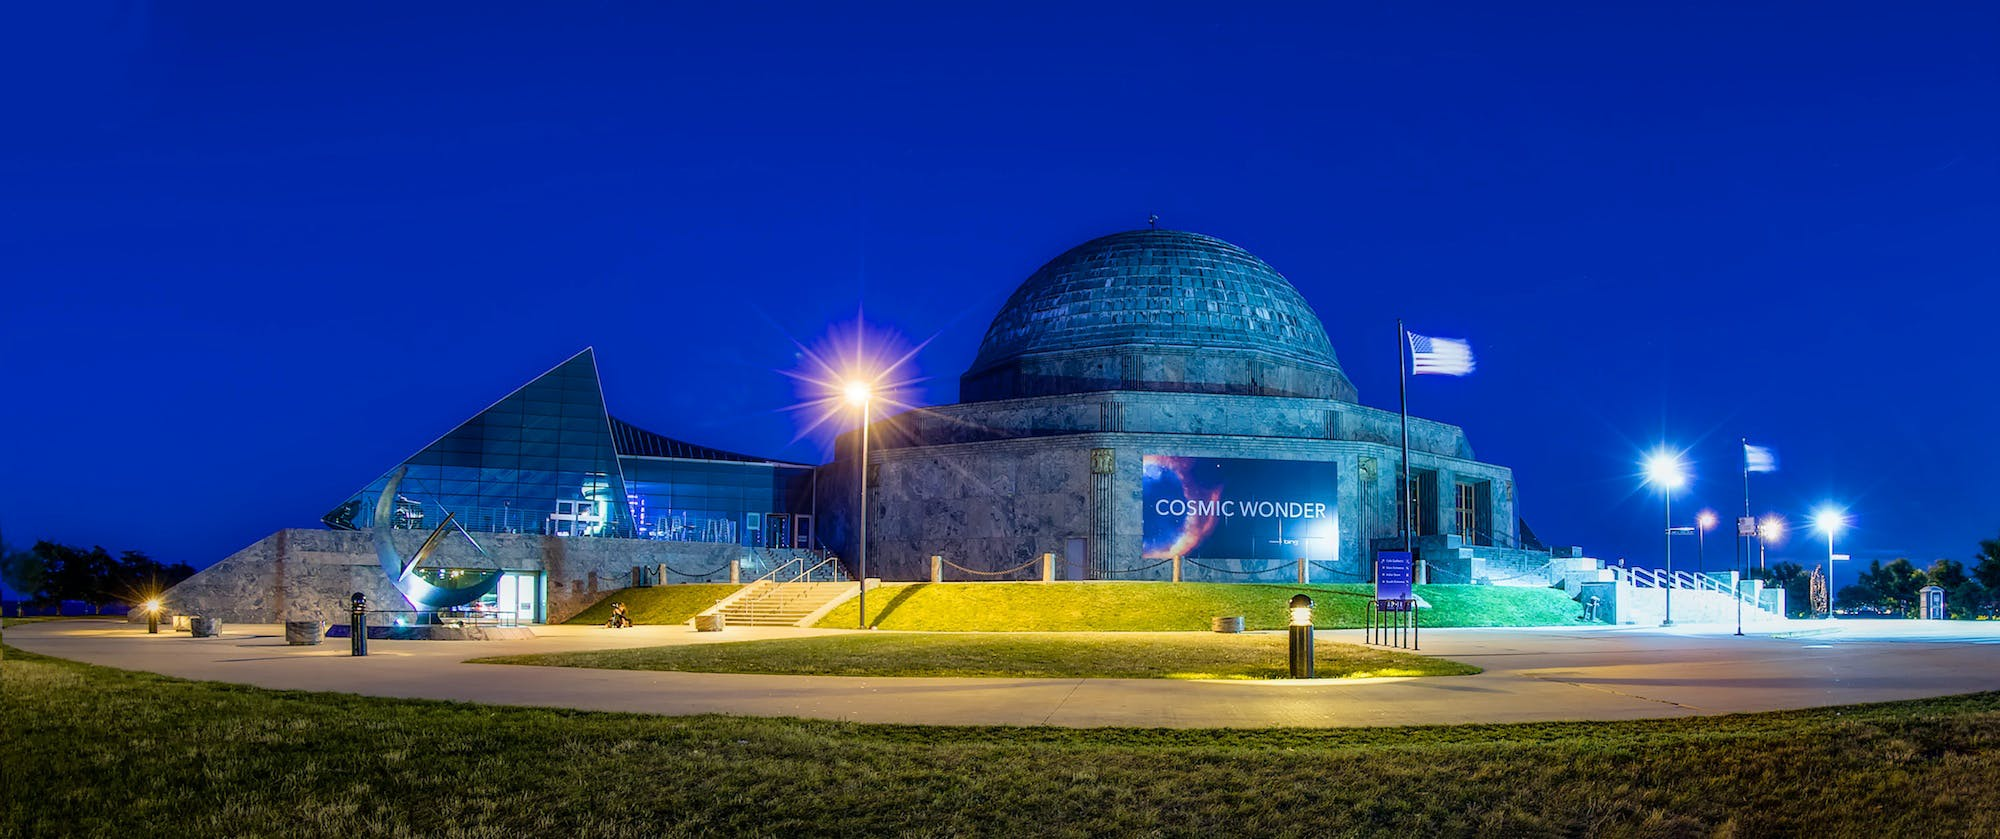 adler planetarium chicago date night ideas